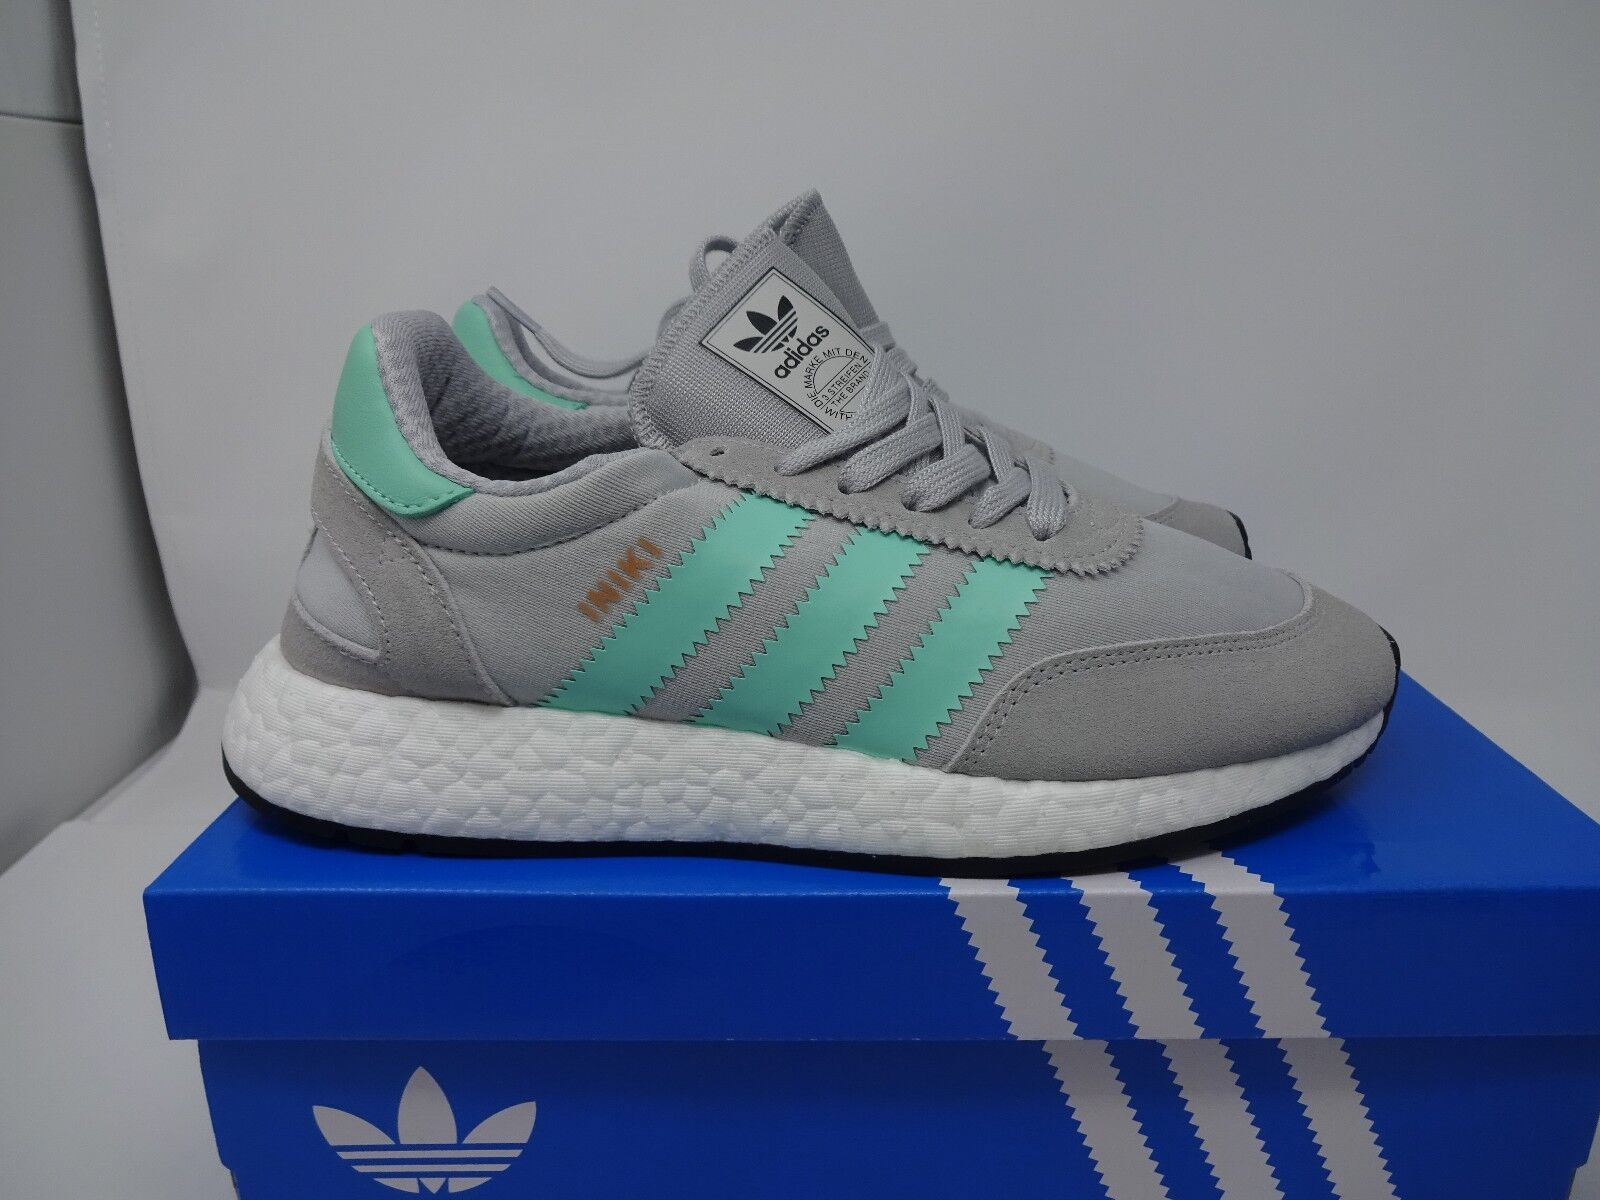 ADIDAS INIKI RUNNER - GREY / GREEN BNIB UK SIZE 6 4 + 5 + 6 SIZE  BB2747 9998f8